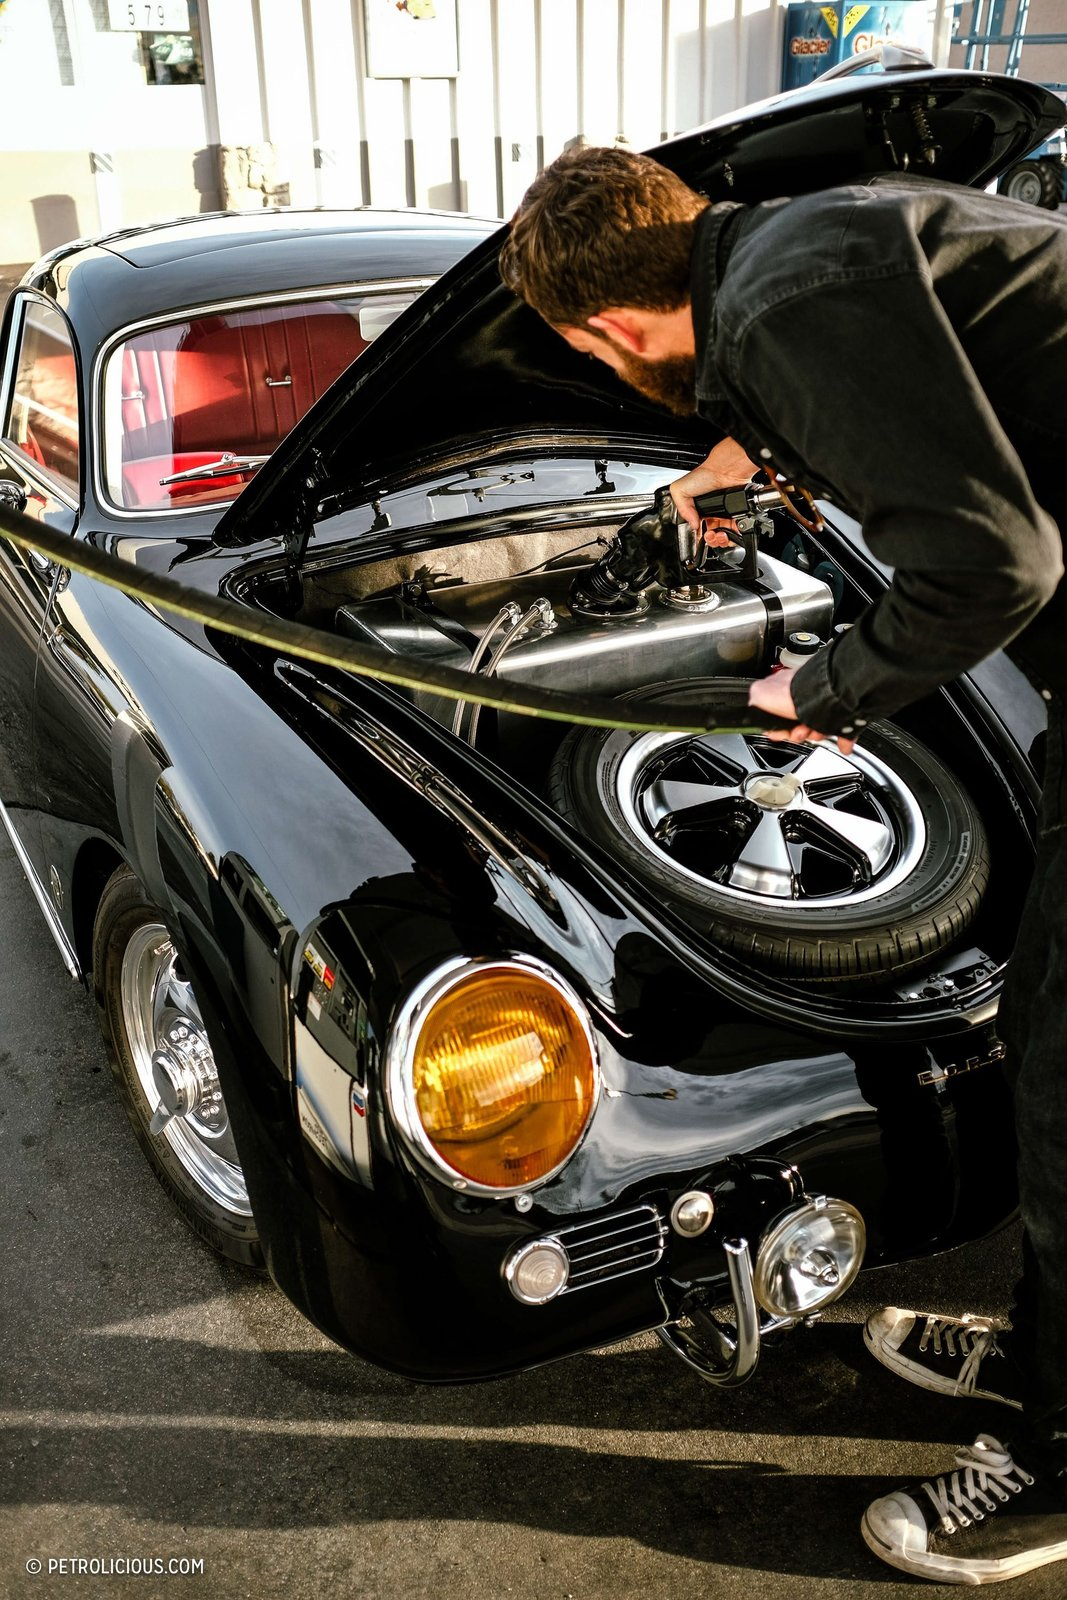 Photo 13 of 16 in This Stunning Outlaw 356 Can Be Found Cruising The Streets Of San Diego